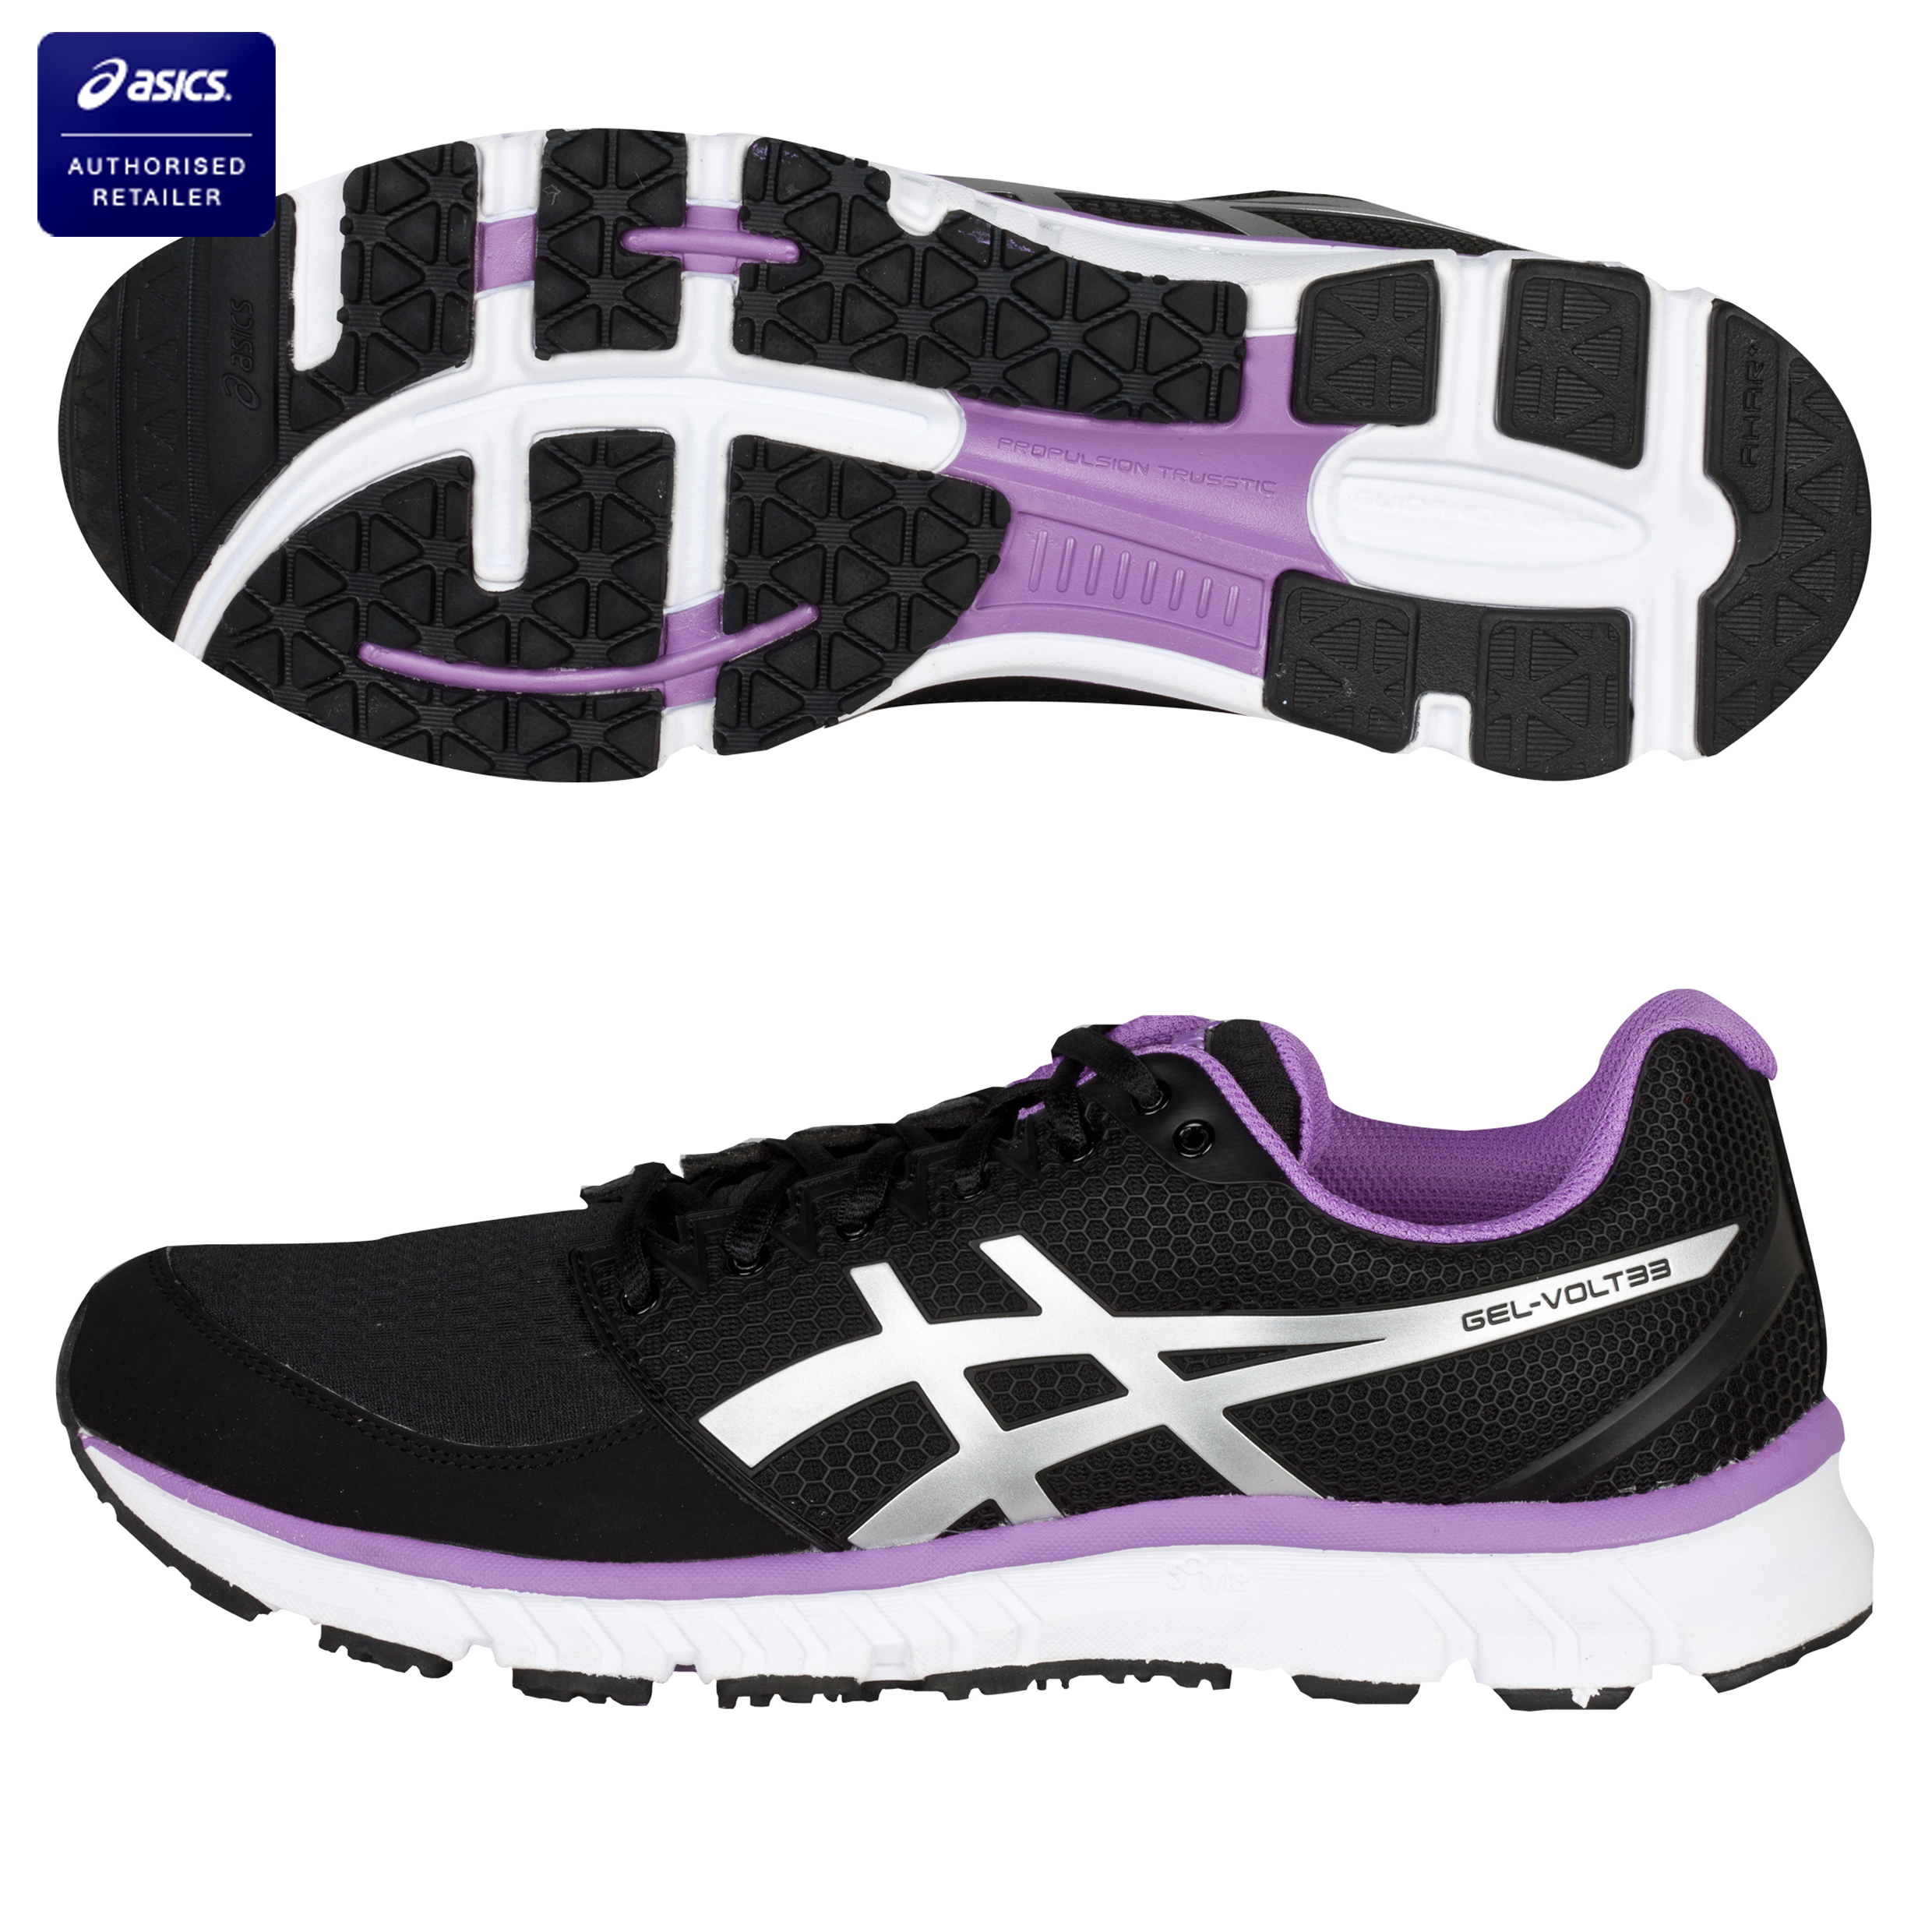 Asics Gel-Volt 33 Trainers - Black/Silver/Purple - Womens